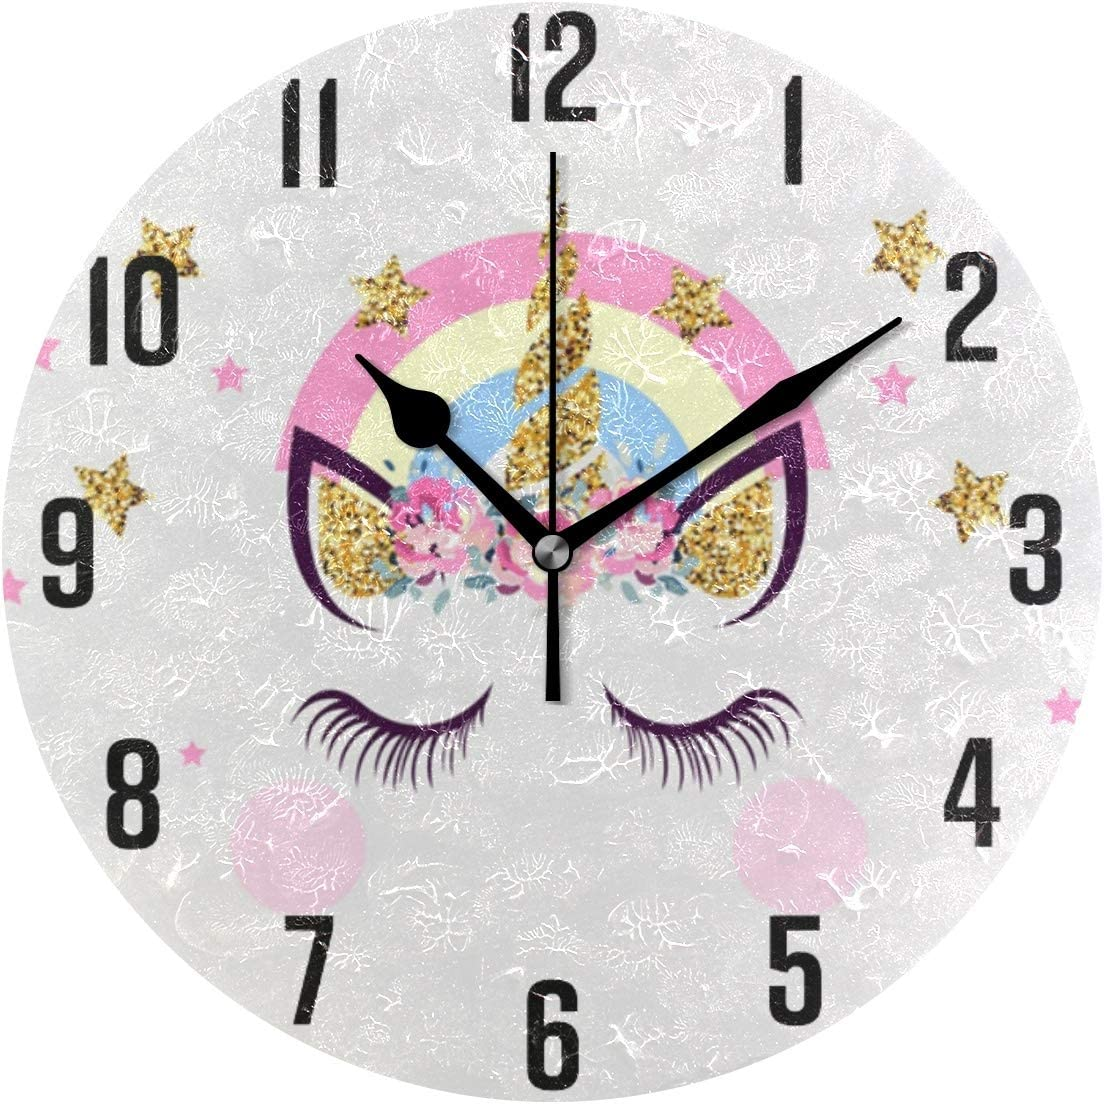 FULUHUAPIN Pink Unicorn Bathroom Bedroom Wall Clock for Kids Girl Non Ticking Quiet Easy to Read for Kitchen Decor 9.5 Inch Round Clock 2031712